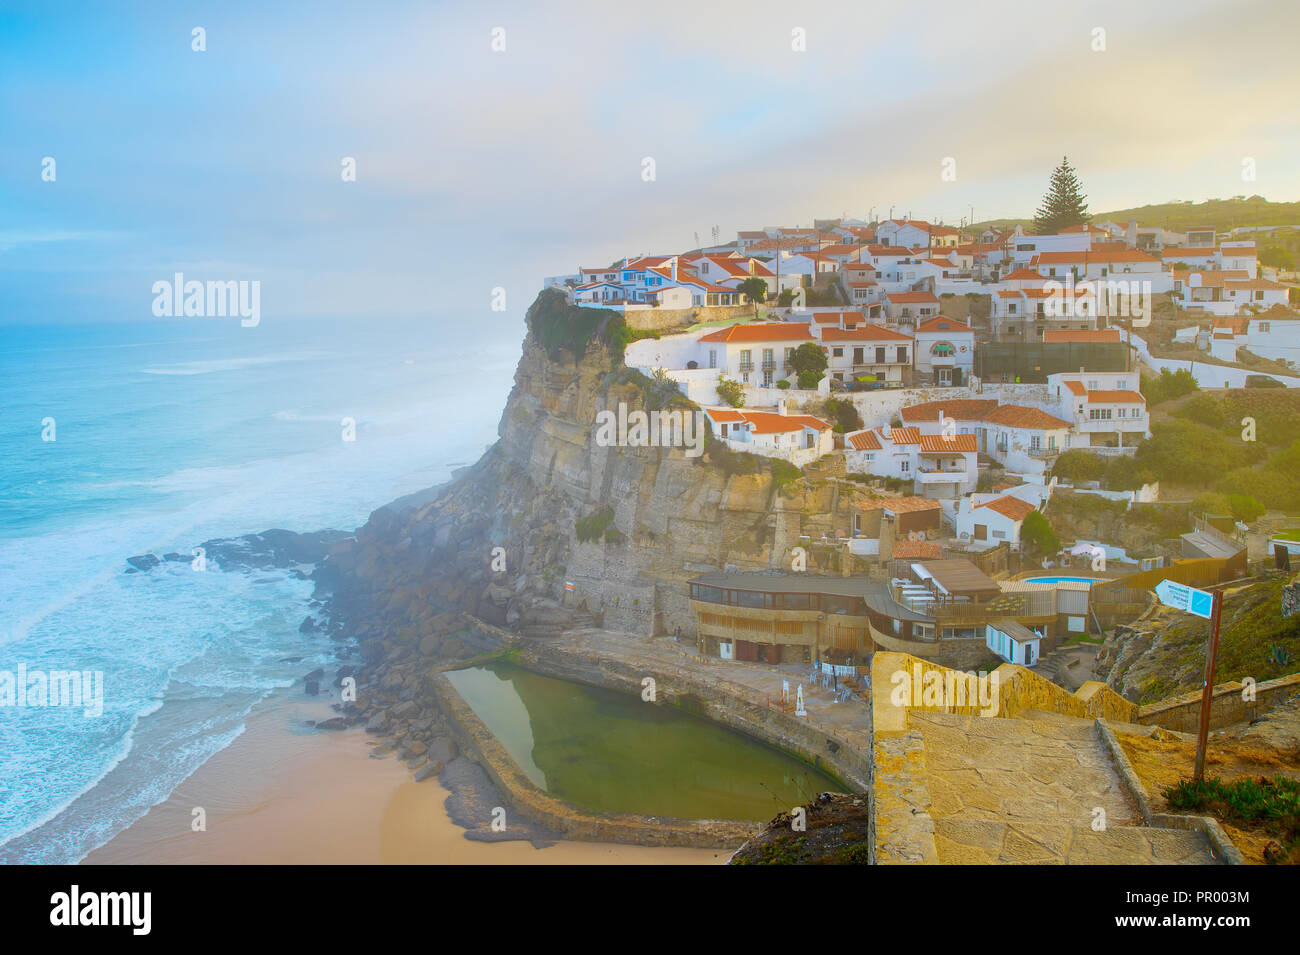 View of Azenha do Mar at sunrise. Portugal Stock Photo